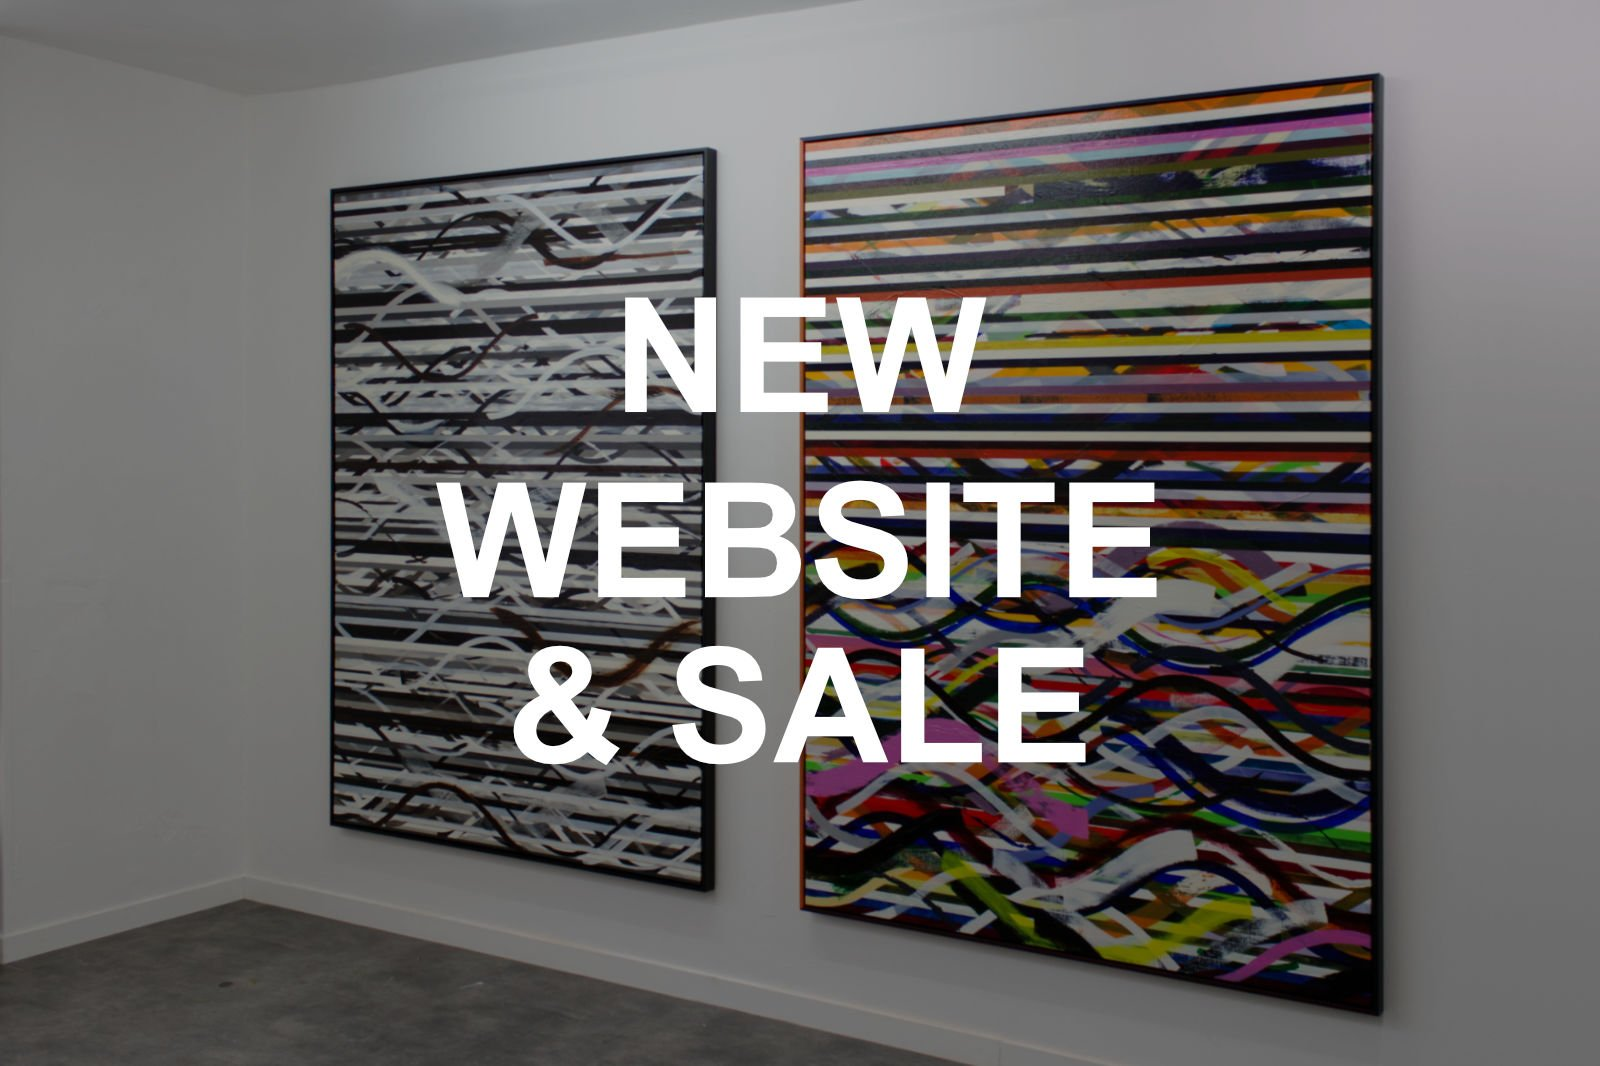 NEW WEBSITE & SALE